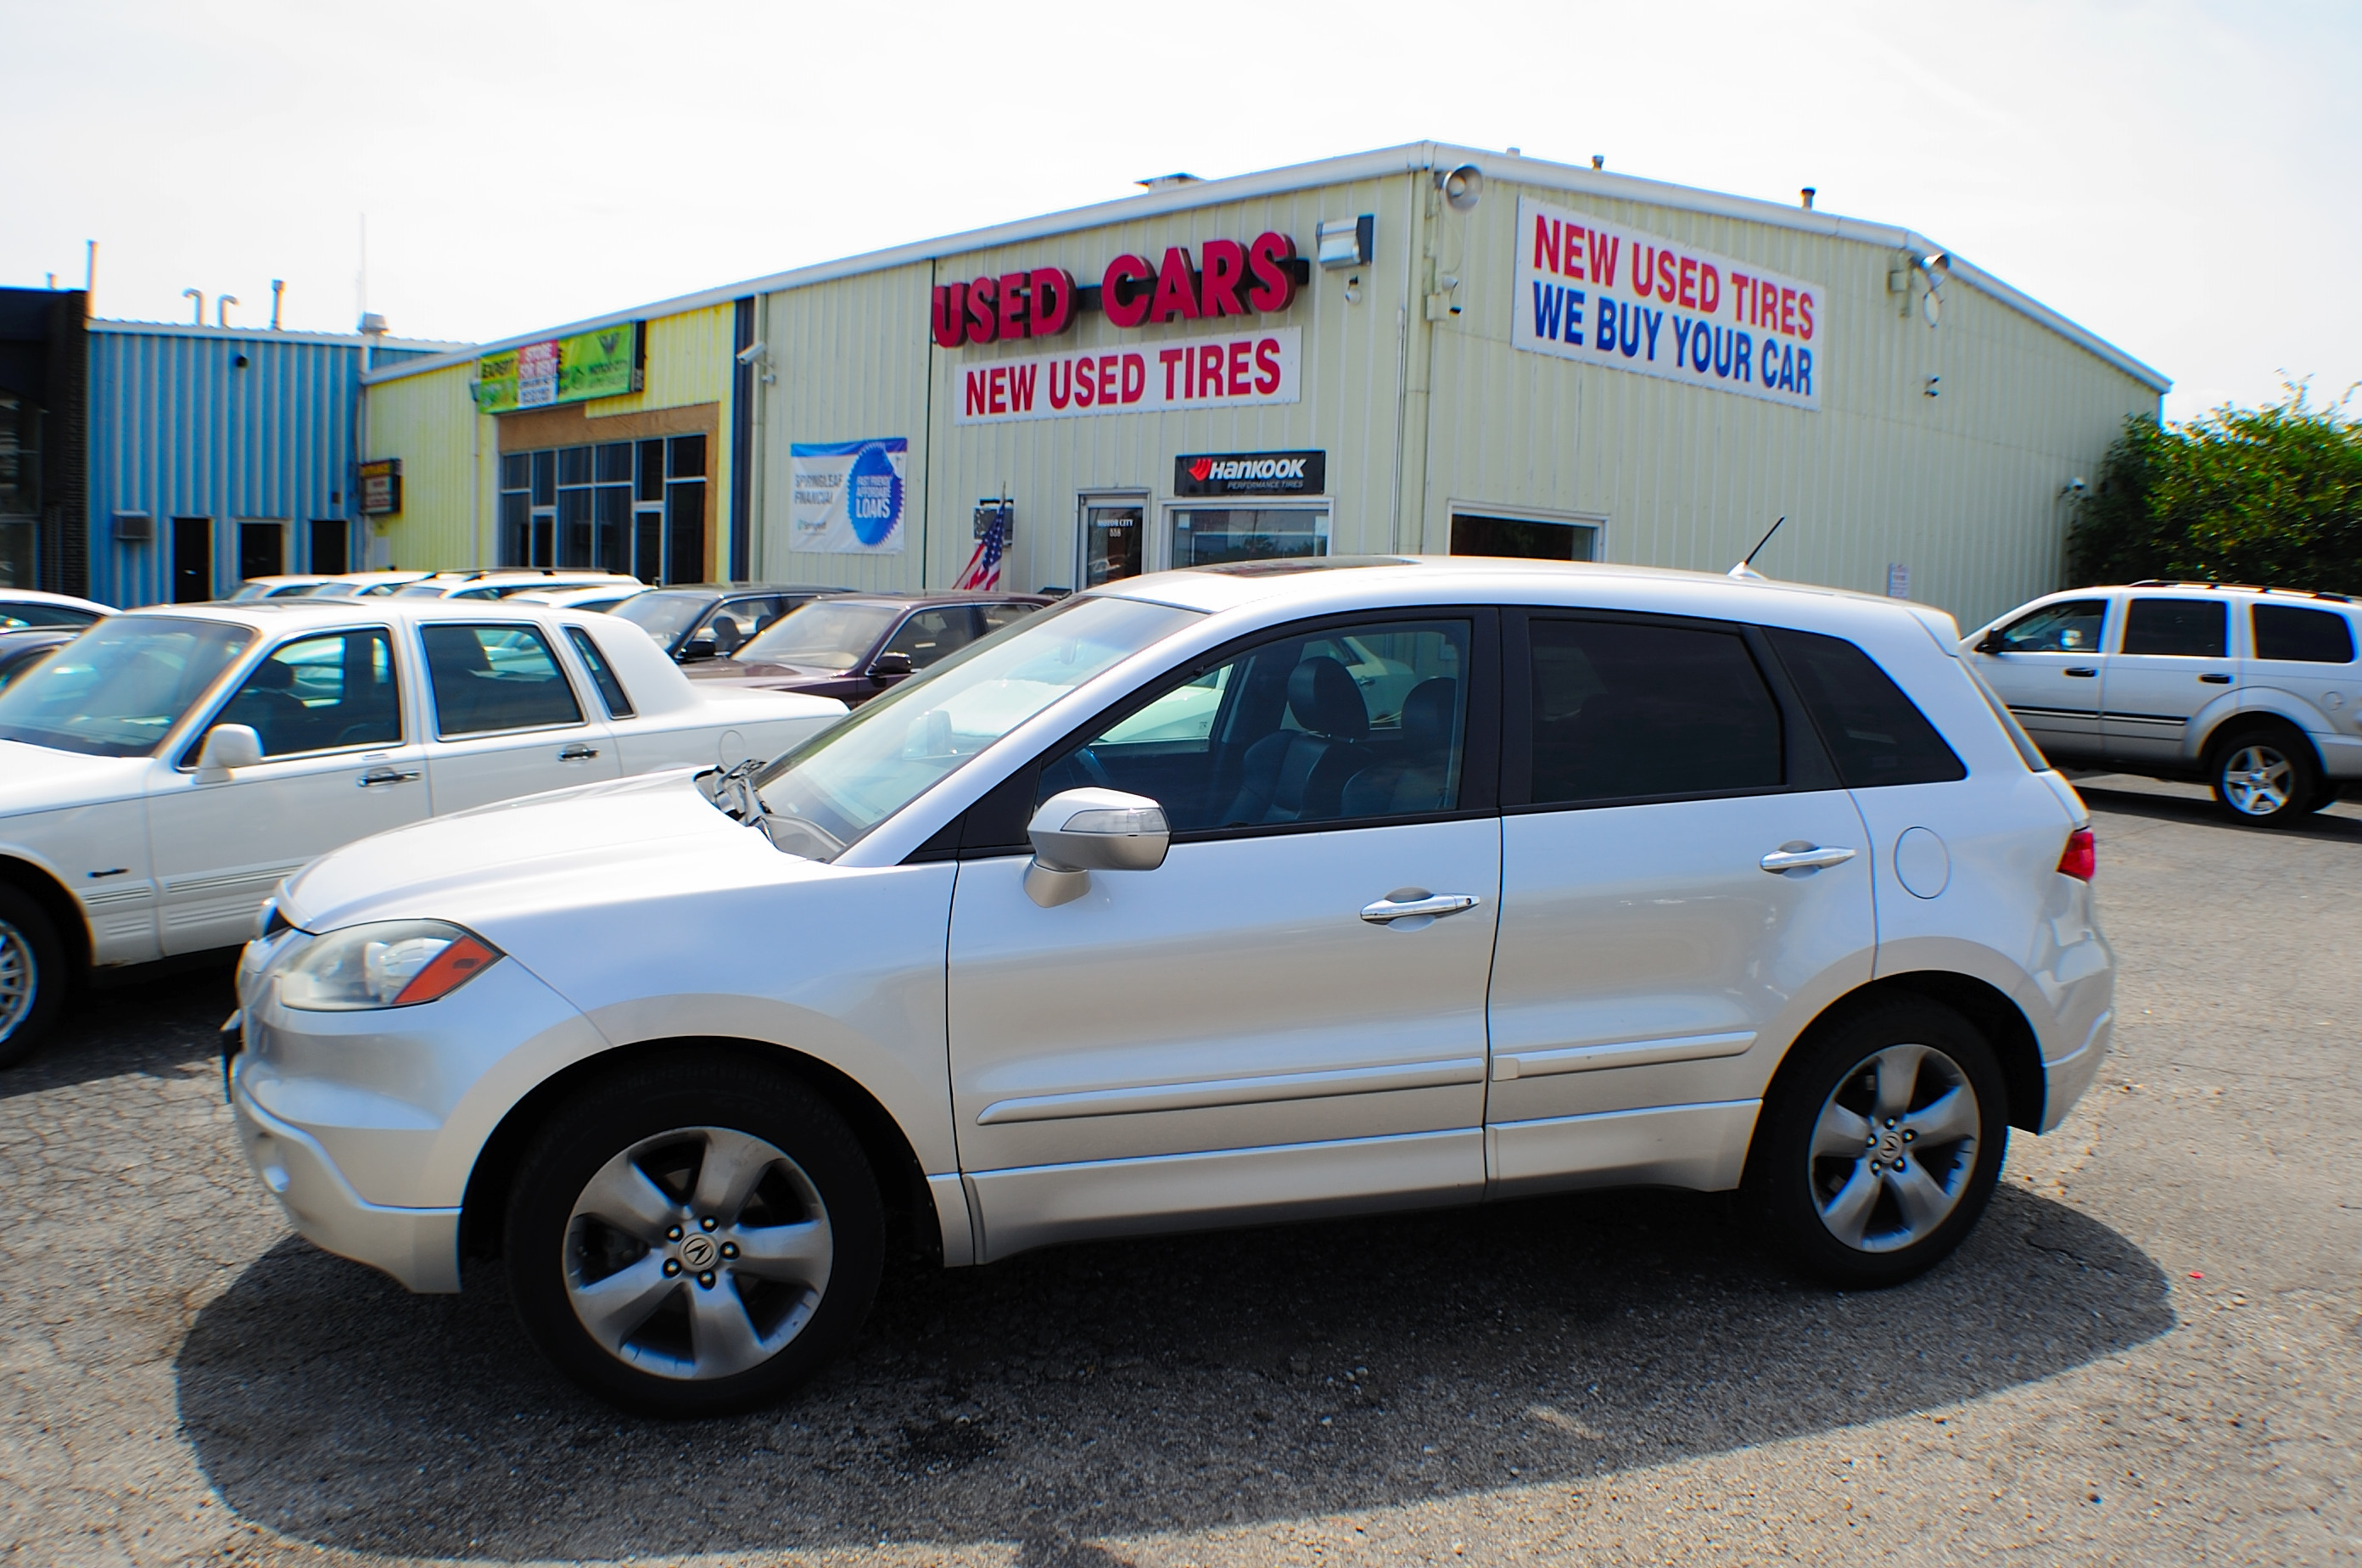 htm mdx inventory index acura vehicles new for schaller sale manchester ct sh in suv awd